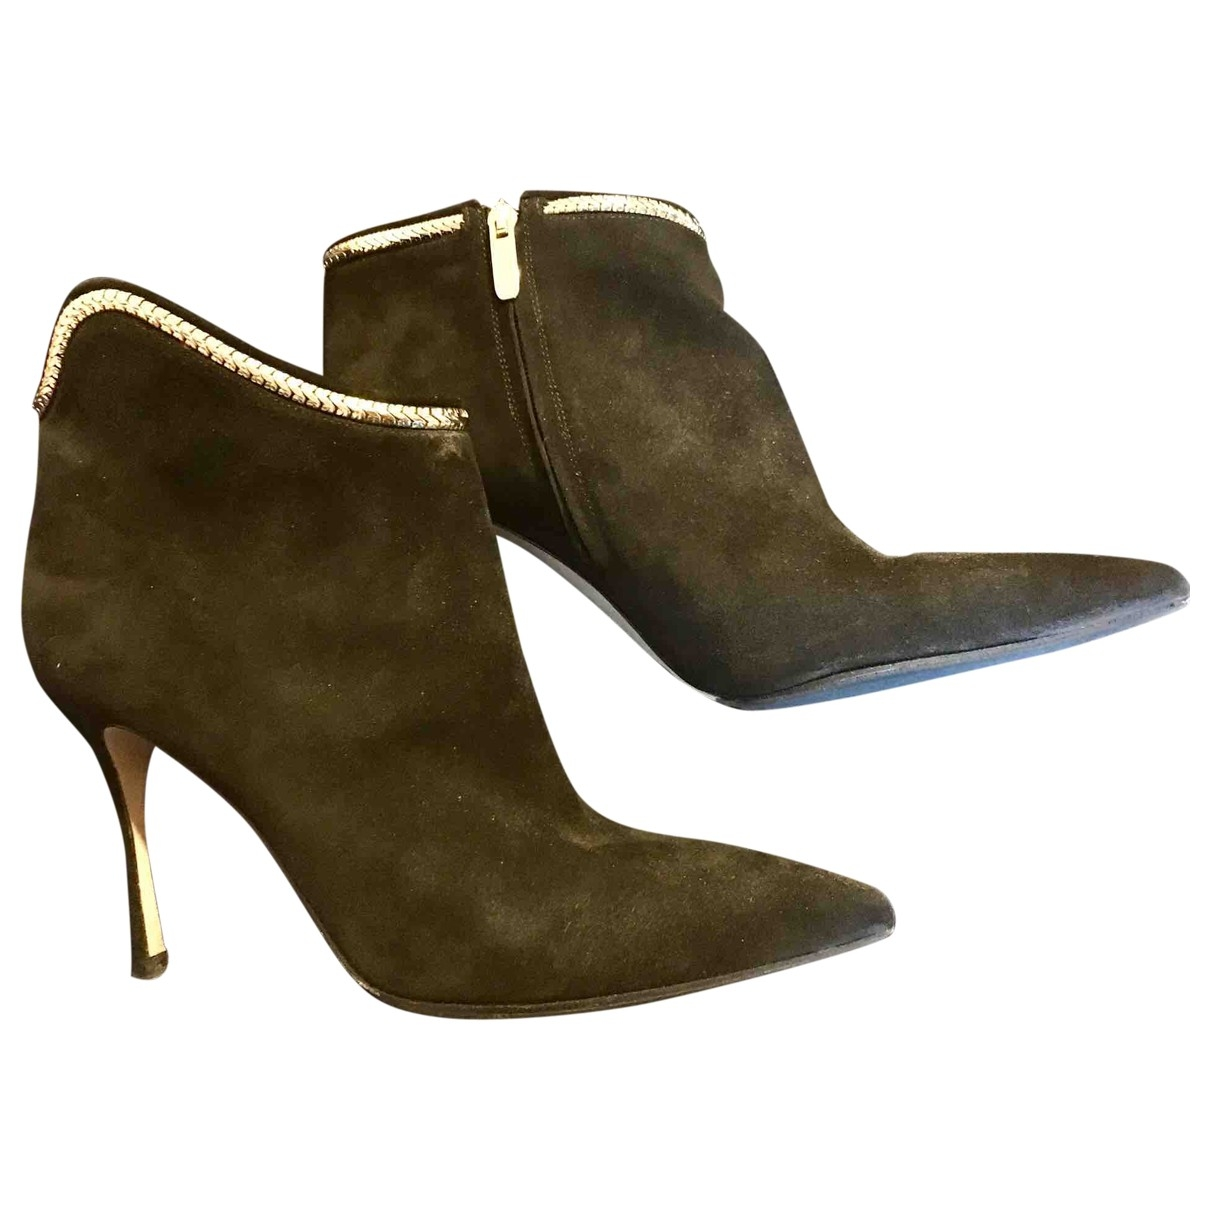 Sergio Rossi \N Black Suede Ankle boots for Women 38 EU